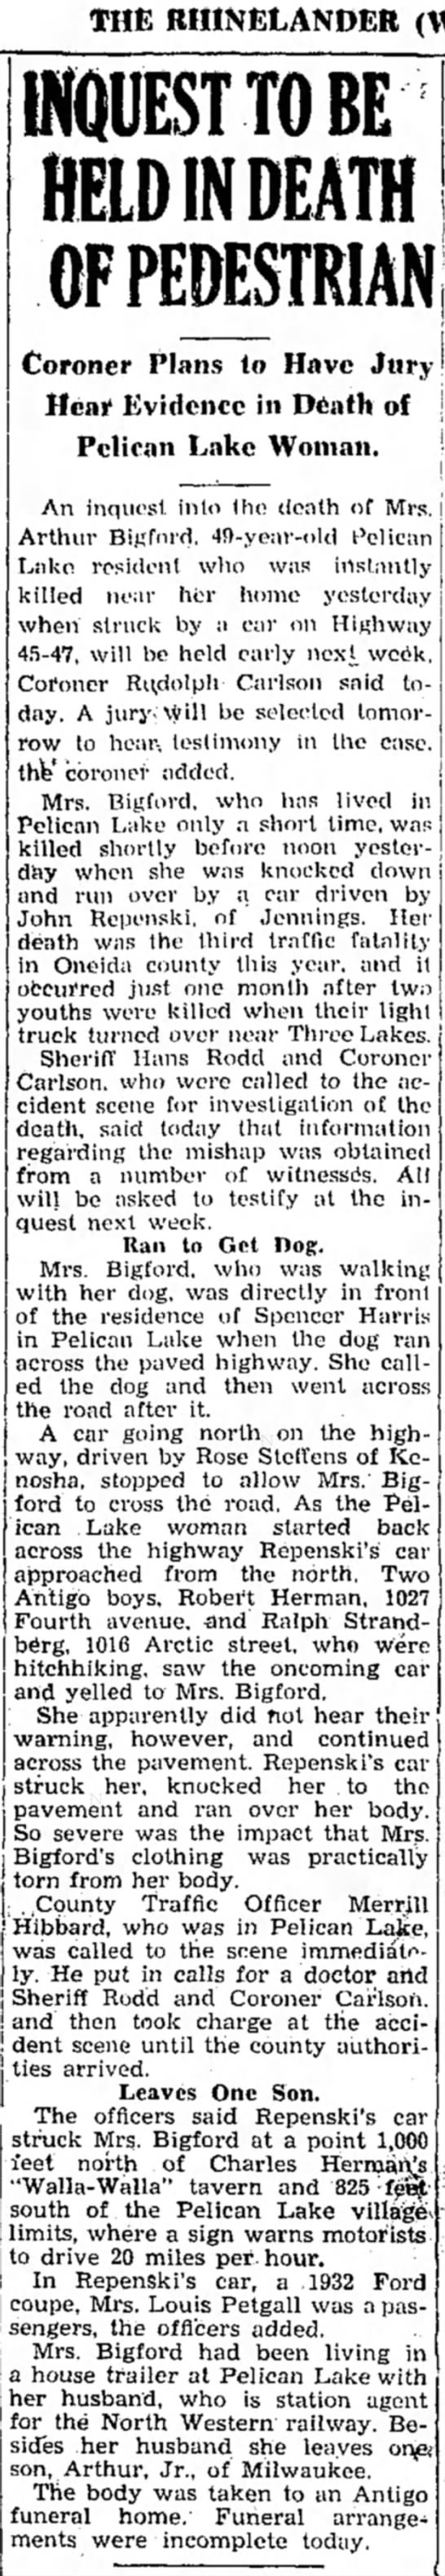 Sylvia Bigford